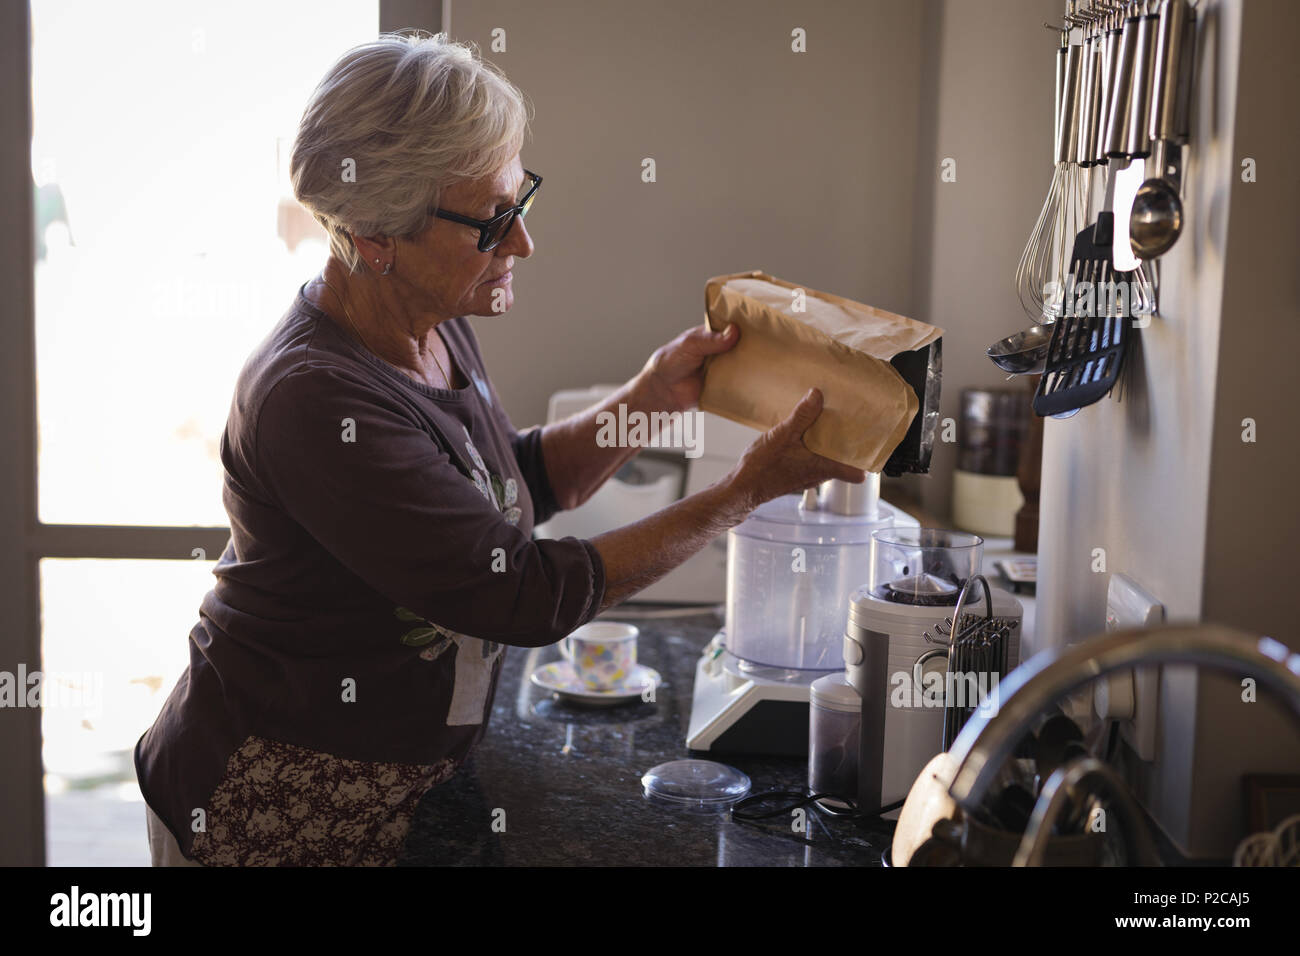 Senior woman putting milk in coffee maker - Stock Image